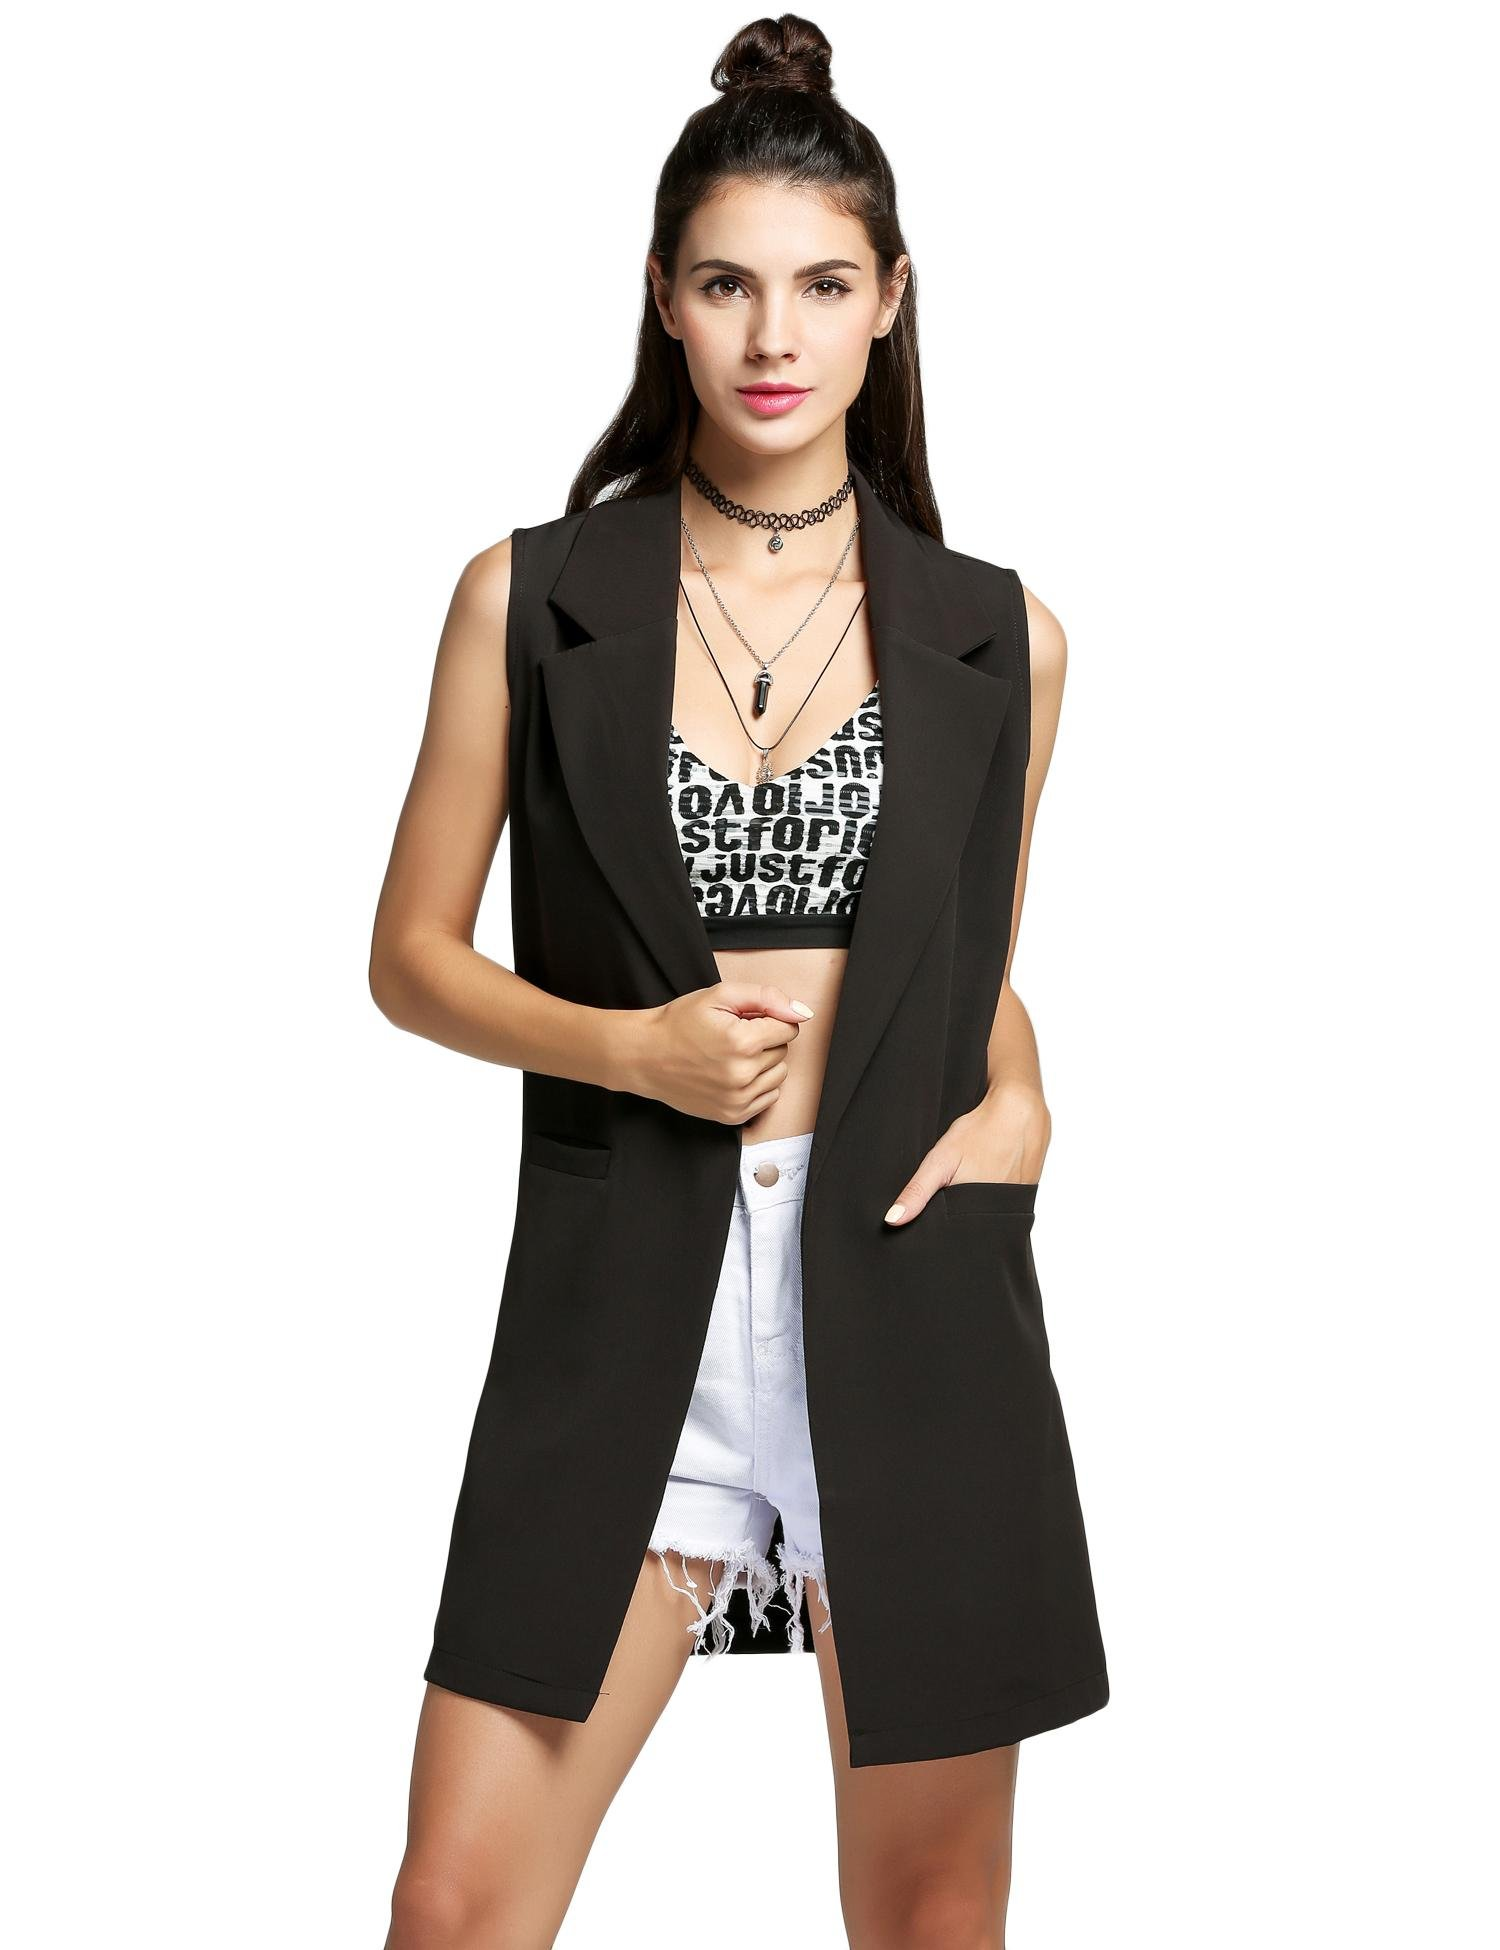 Women Casual Sleeveless Solid Vest Trench Coat With Pockets Long suit coat Waistcoat Cardigan (XX-Large, Black)